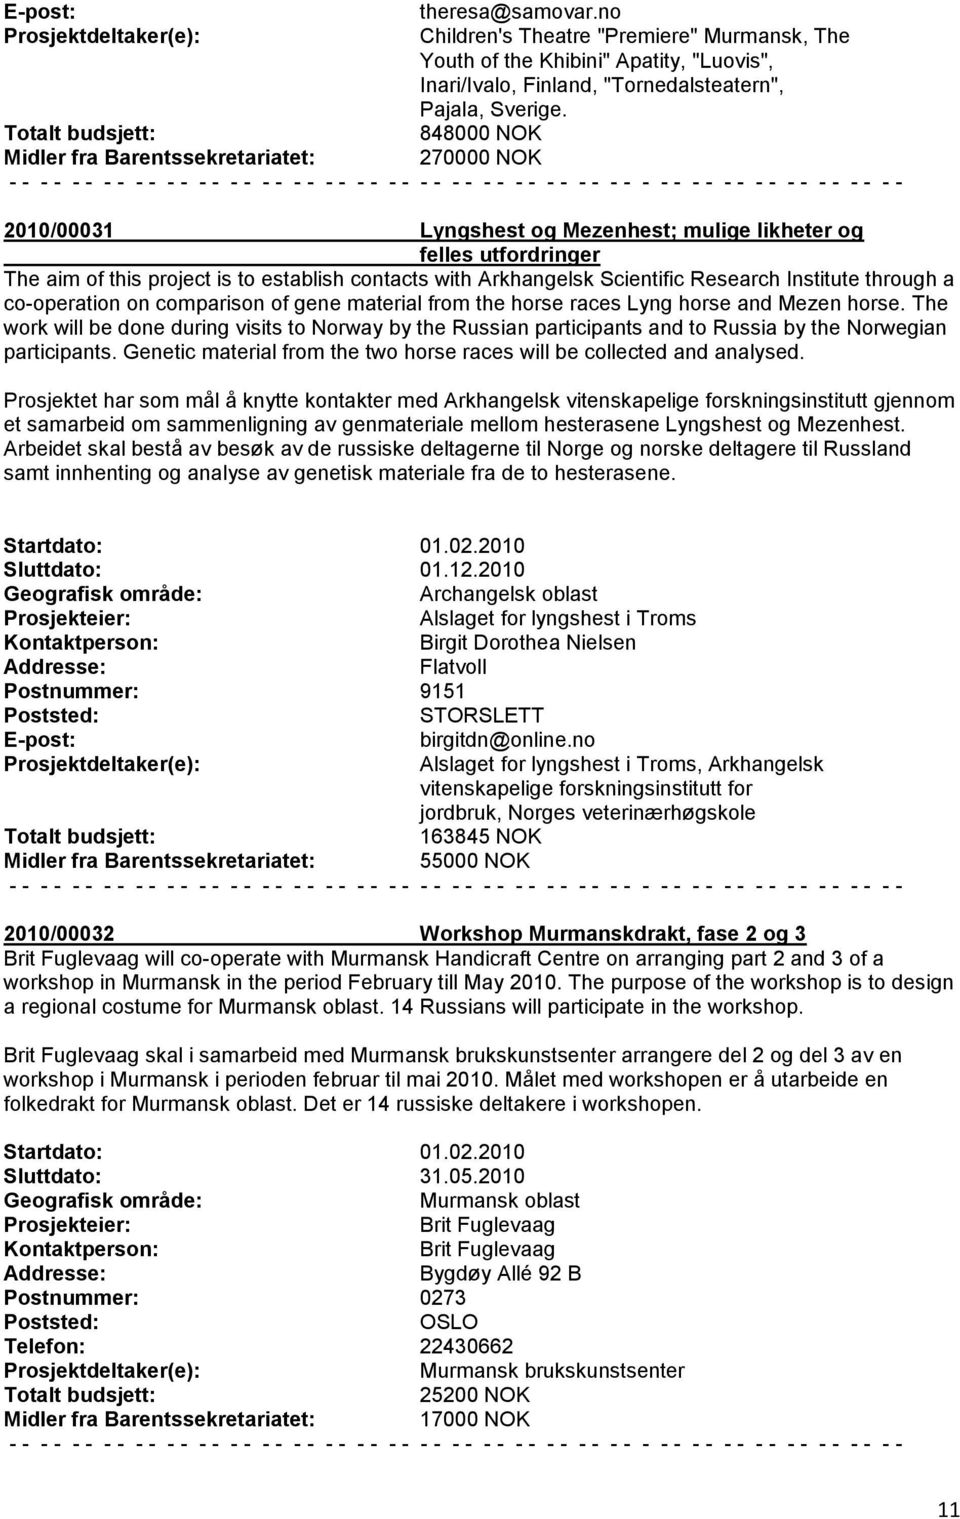 Scientific Research Institute through a co-operation on comparison of gene material from the horse races Lyng horse and Mezen horse.